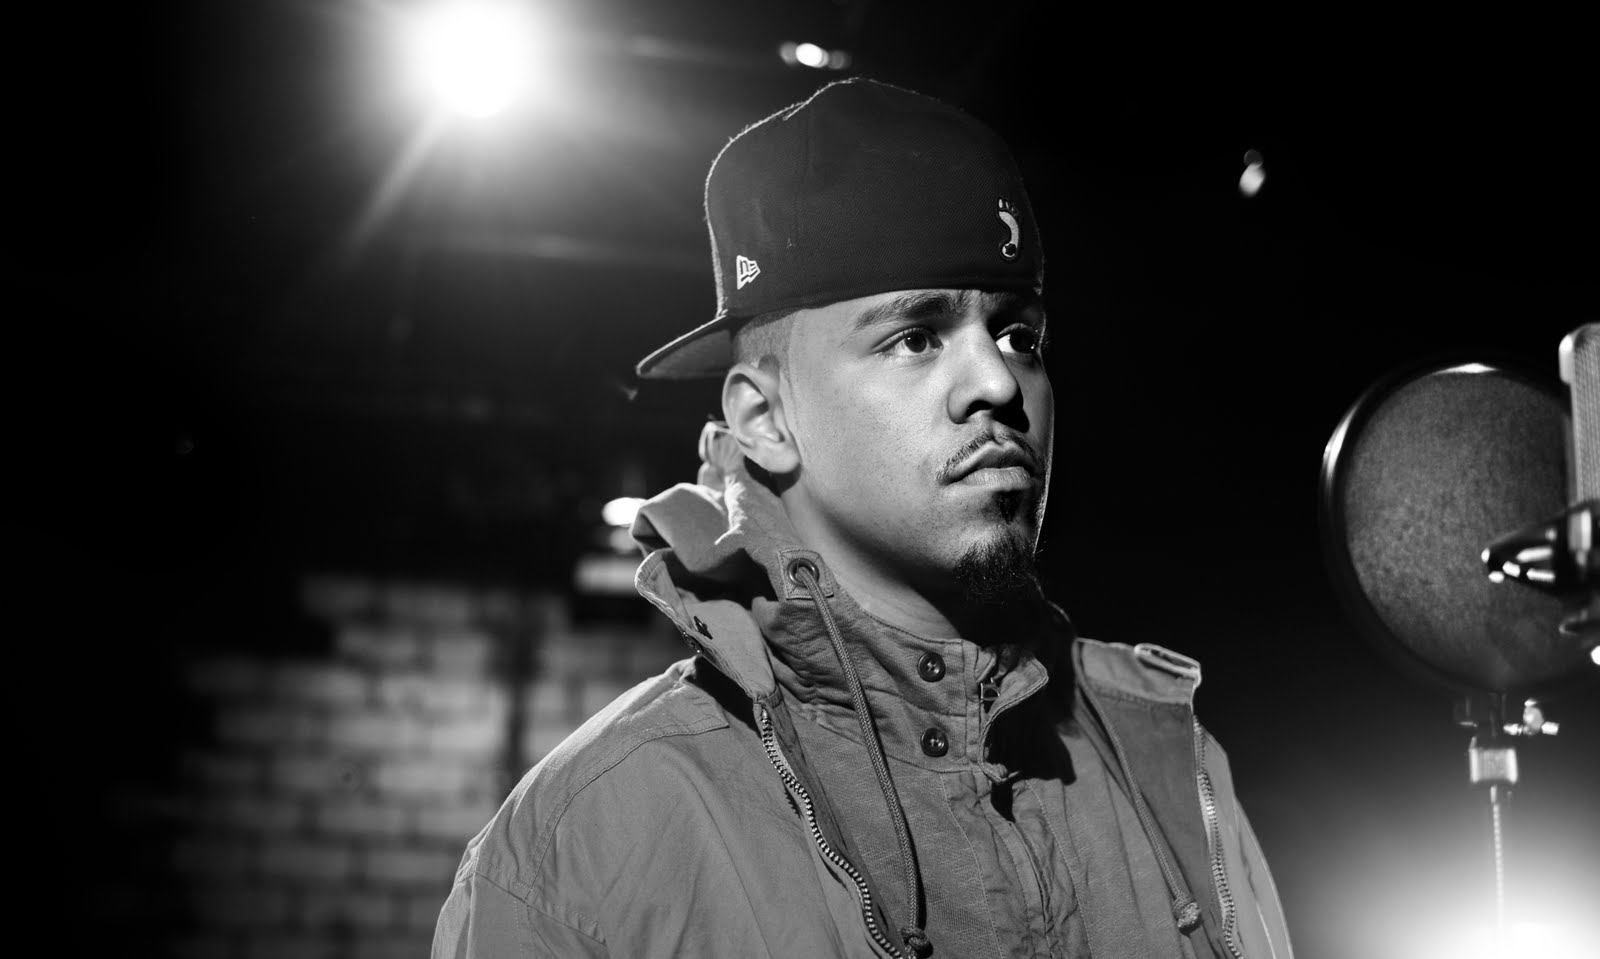 J Cole – 2014 Forest Hill Drive, découvrez l'album en streaming